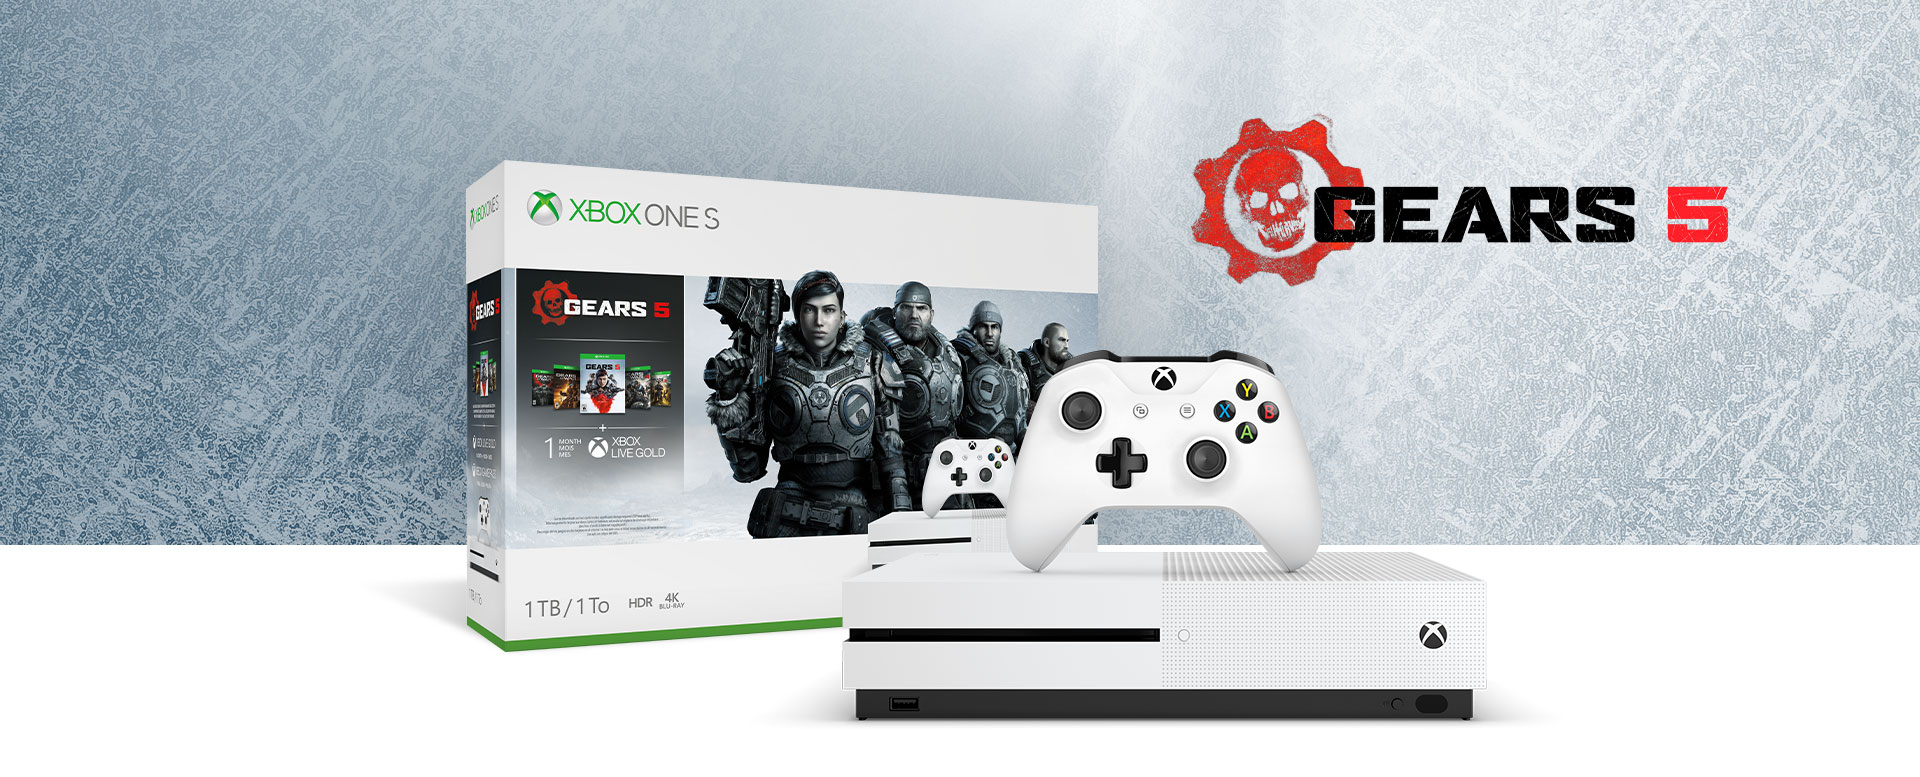 Xbox One S Gears 5 Bundle (1TB) | Xbox